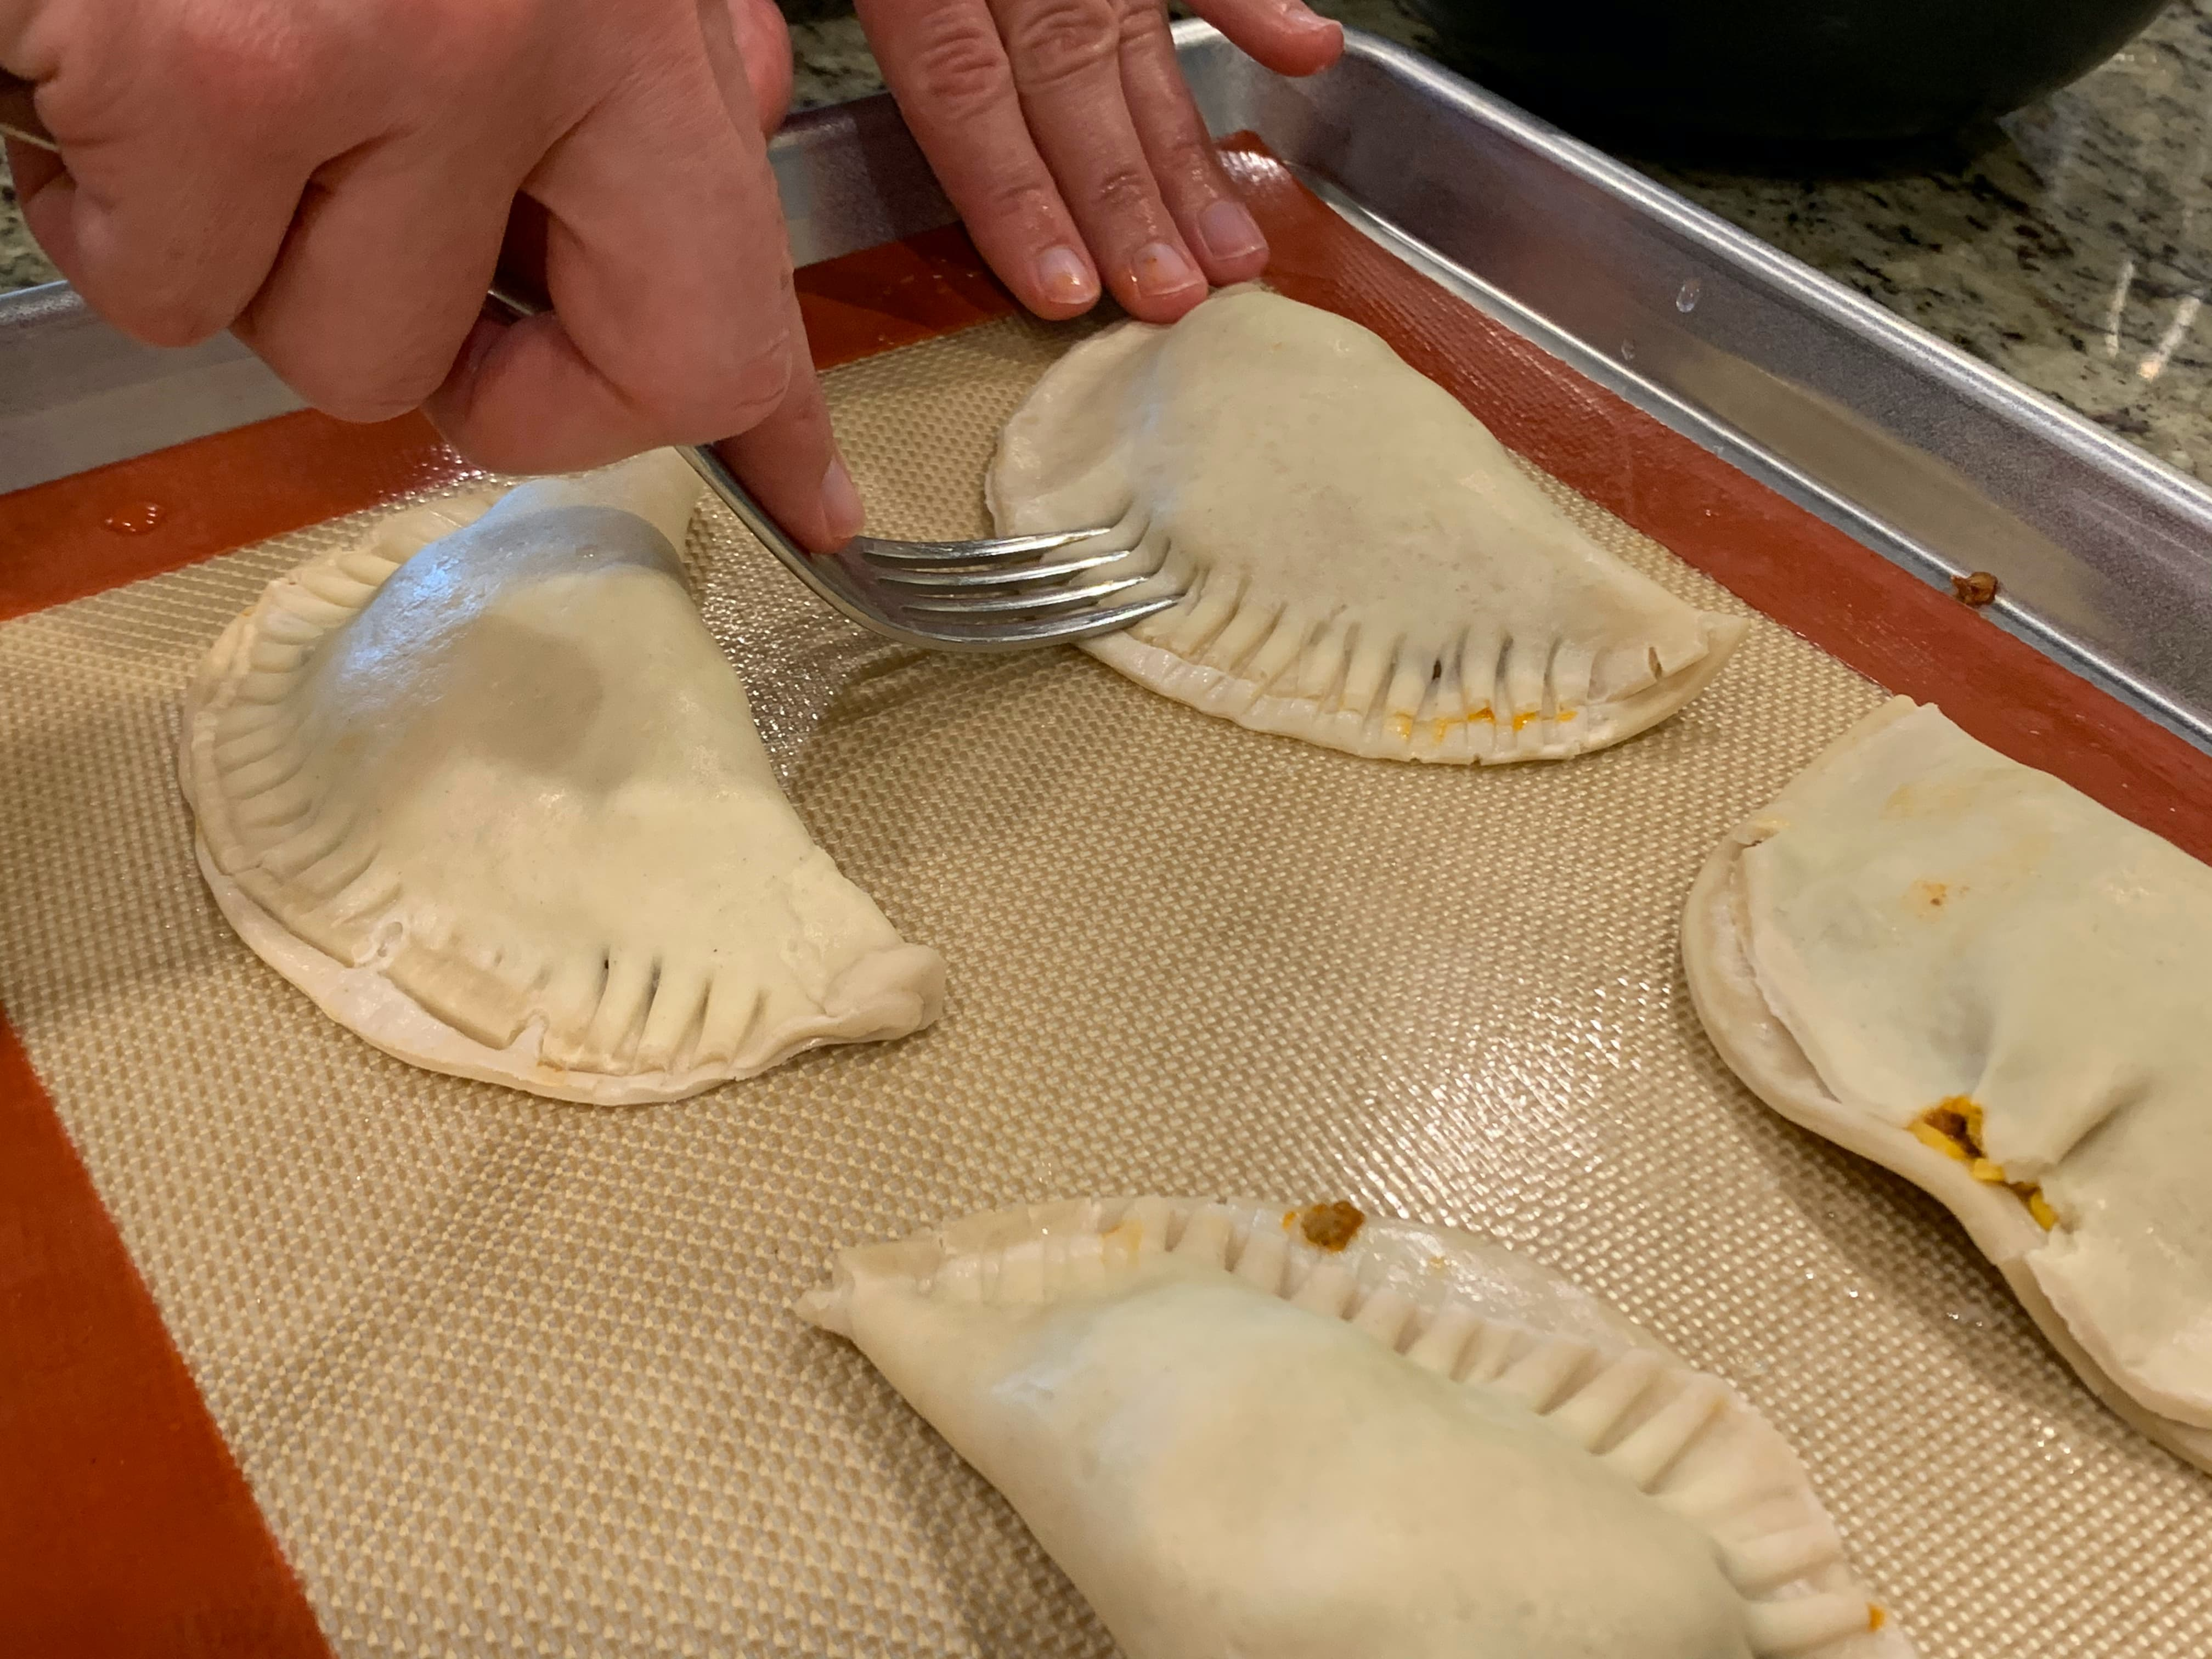 Crimping and sealing empanadas with fork.